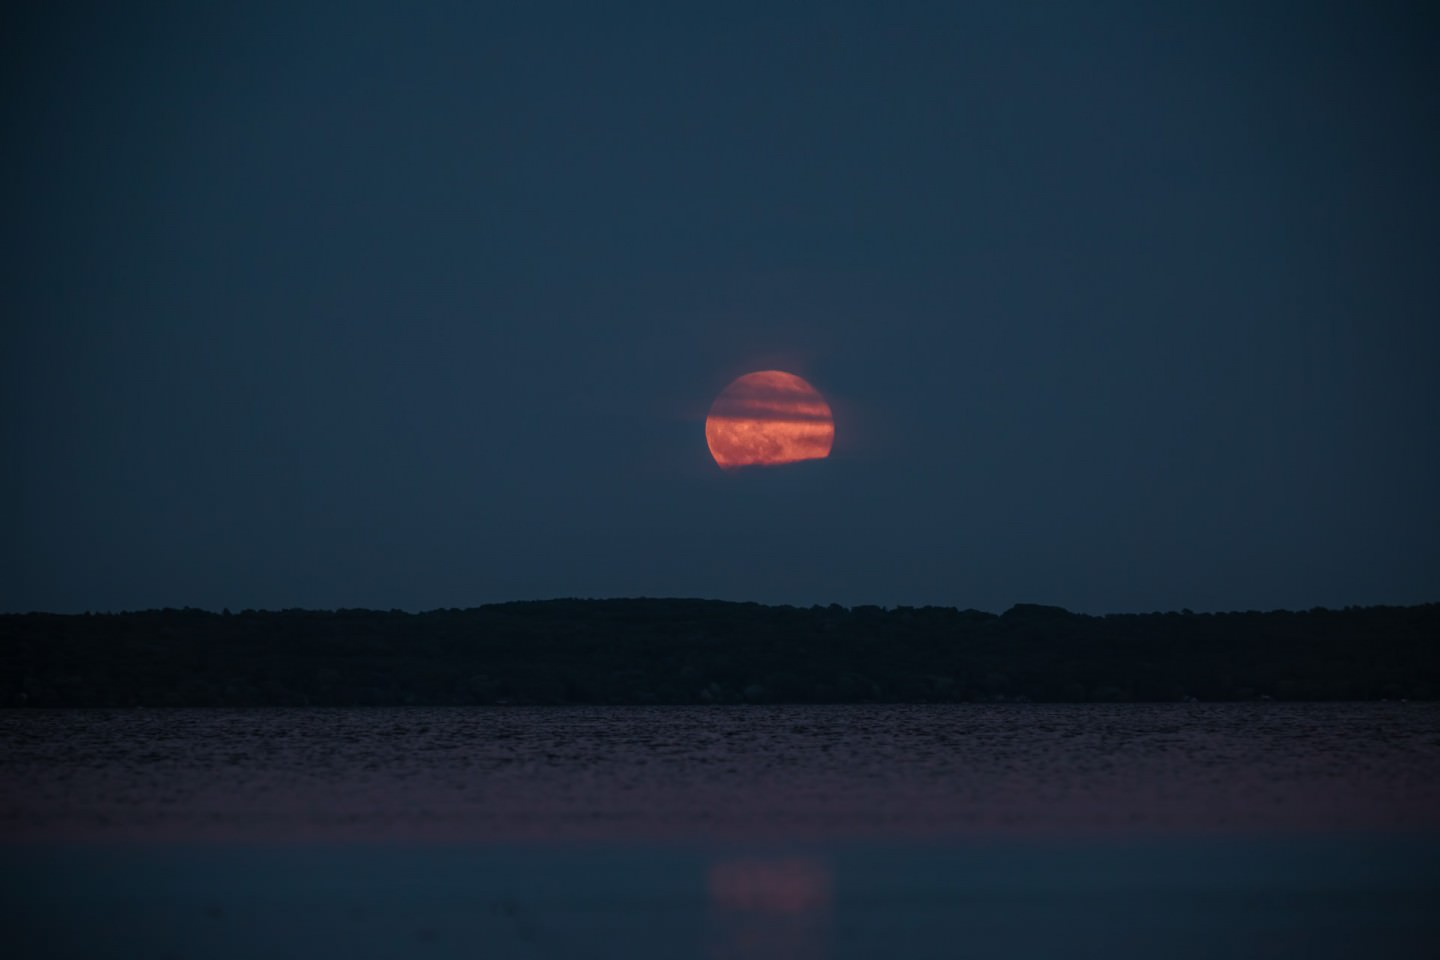 Strawberry-Moon-Rising-on-The-Summer-Solstice-1440x960.jpg